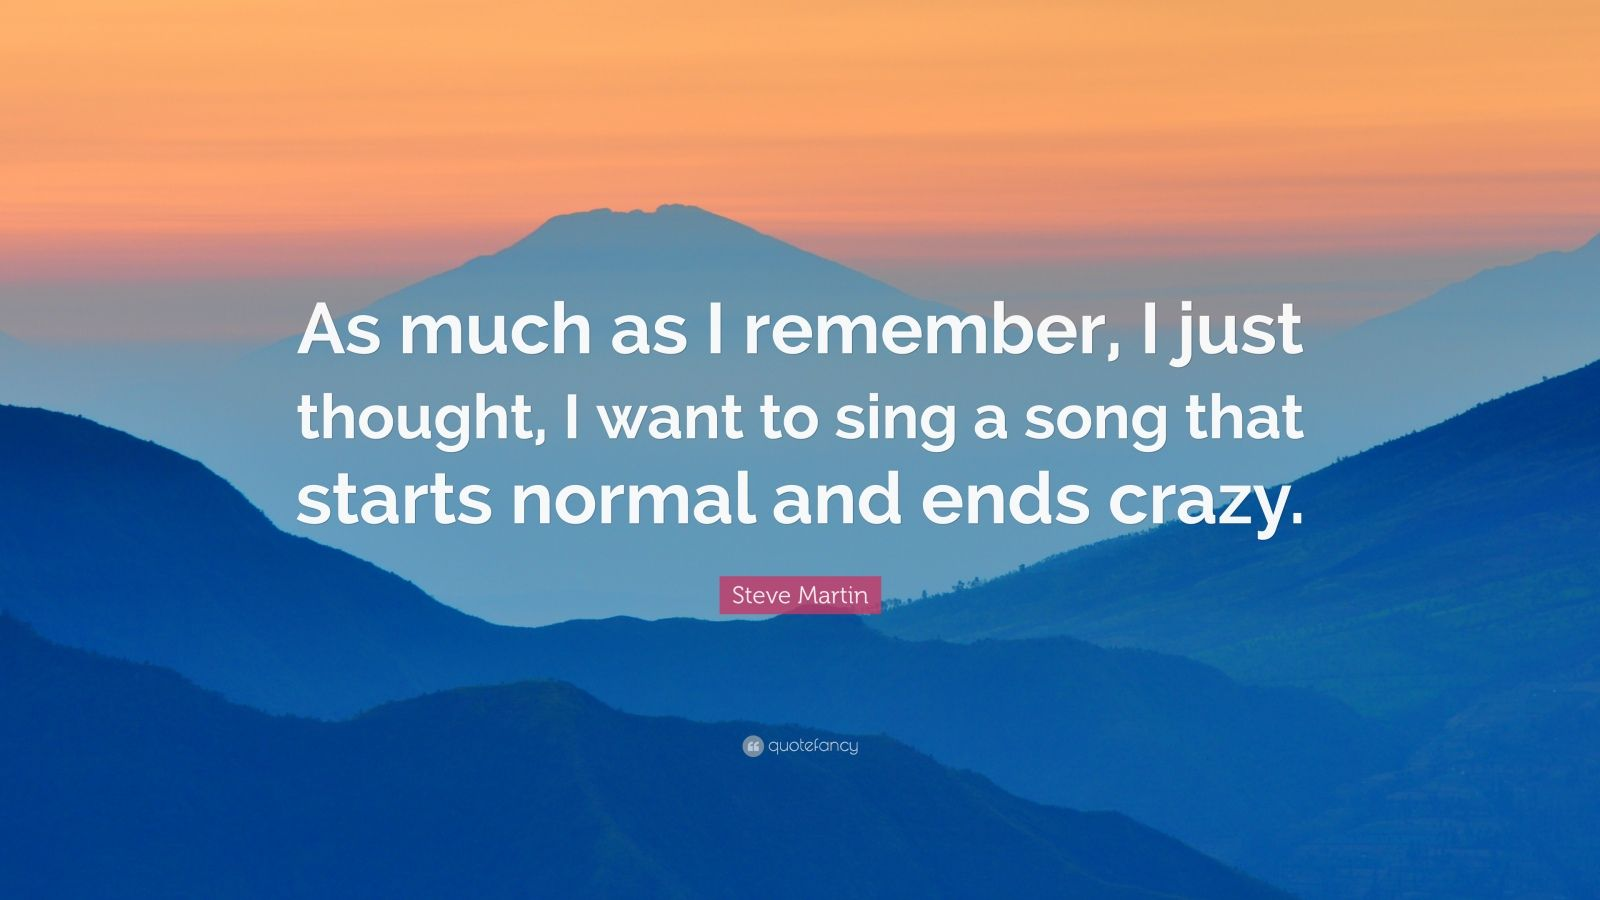 """Steve Martin Quote: """"As much as I remember, I just thought, I want to sing a song that starts normal and ends crazy."""""""